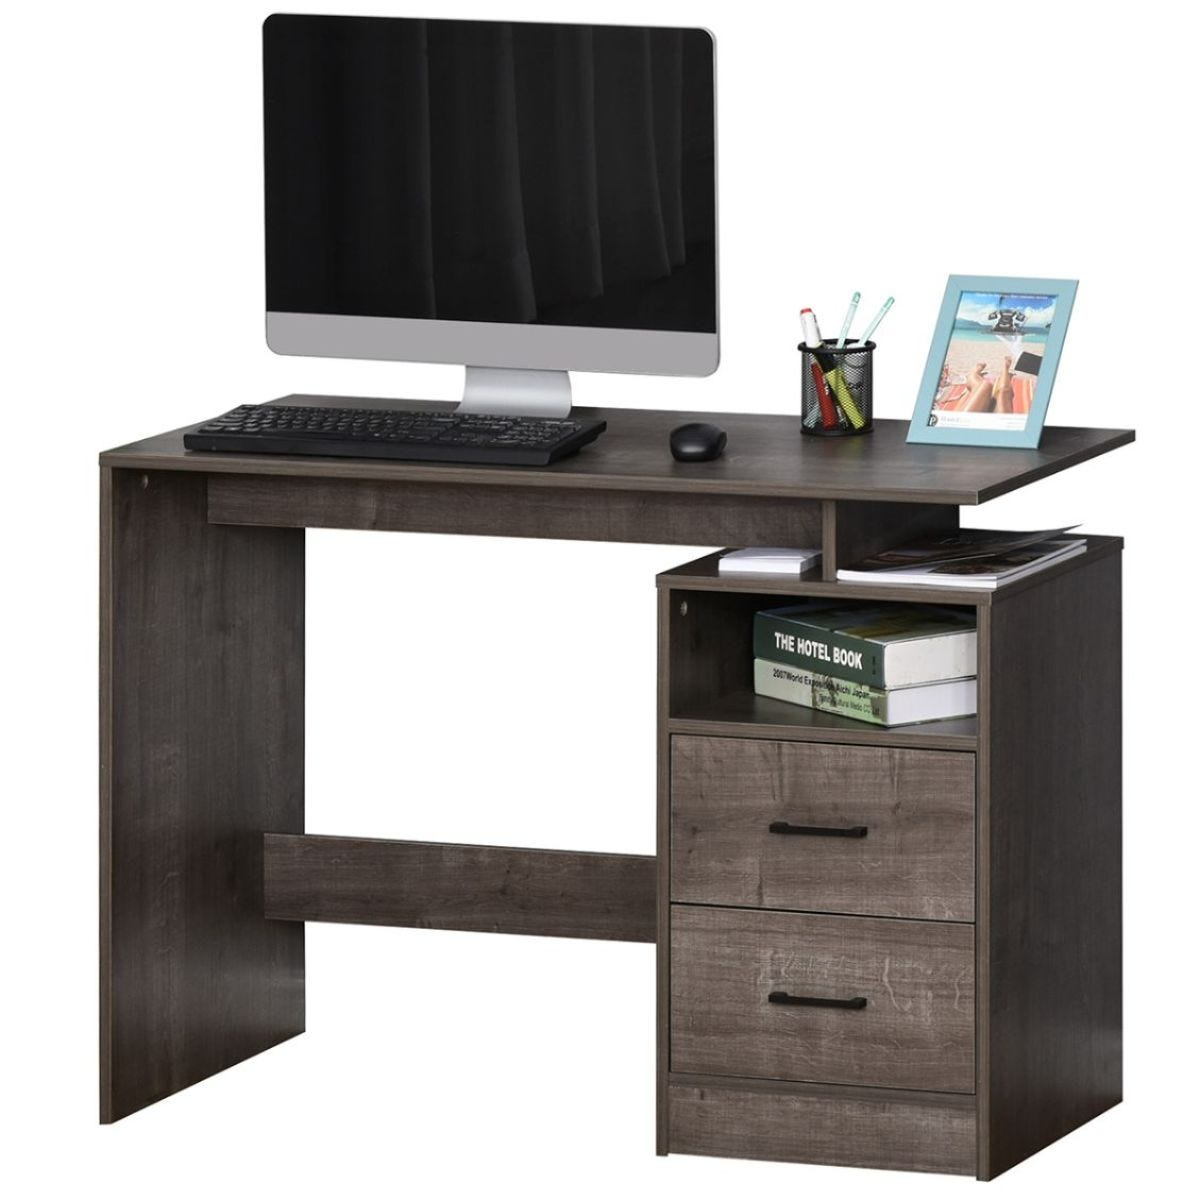 Computer Desk With Shelf Drawer For Home Office Grey Wood Grain Effect